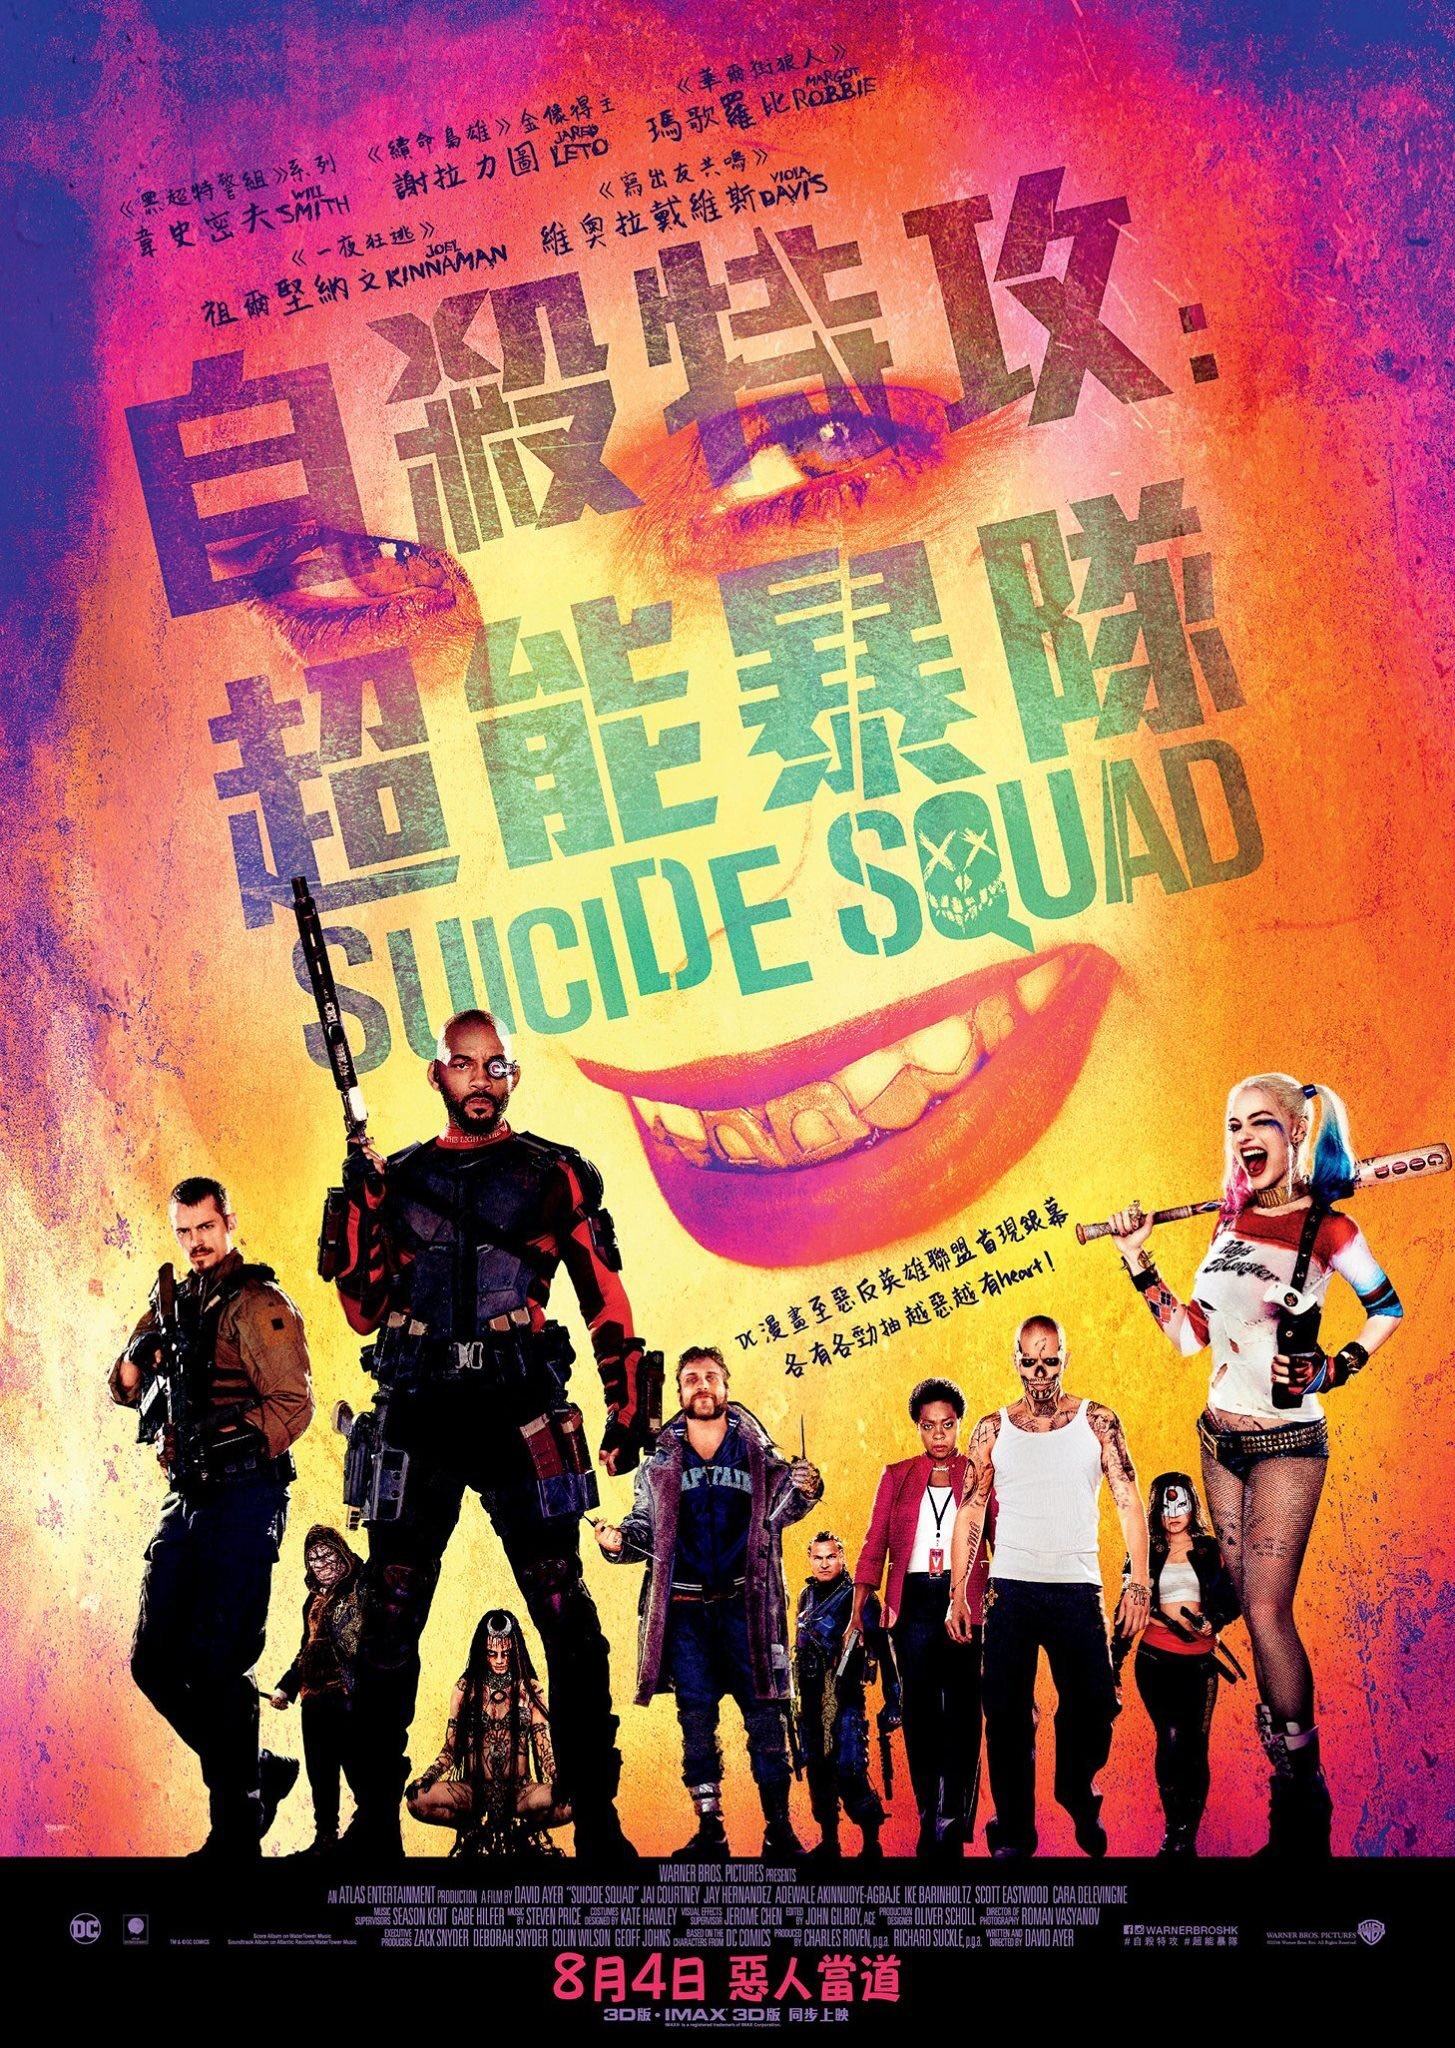 Suicide Squad (a.k.a. Task Force X), these posters find Jokers sinister face in the background. Adding even more flavor, Joker is sporting creepy grin